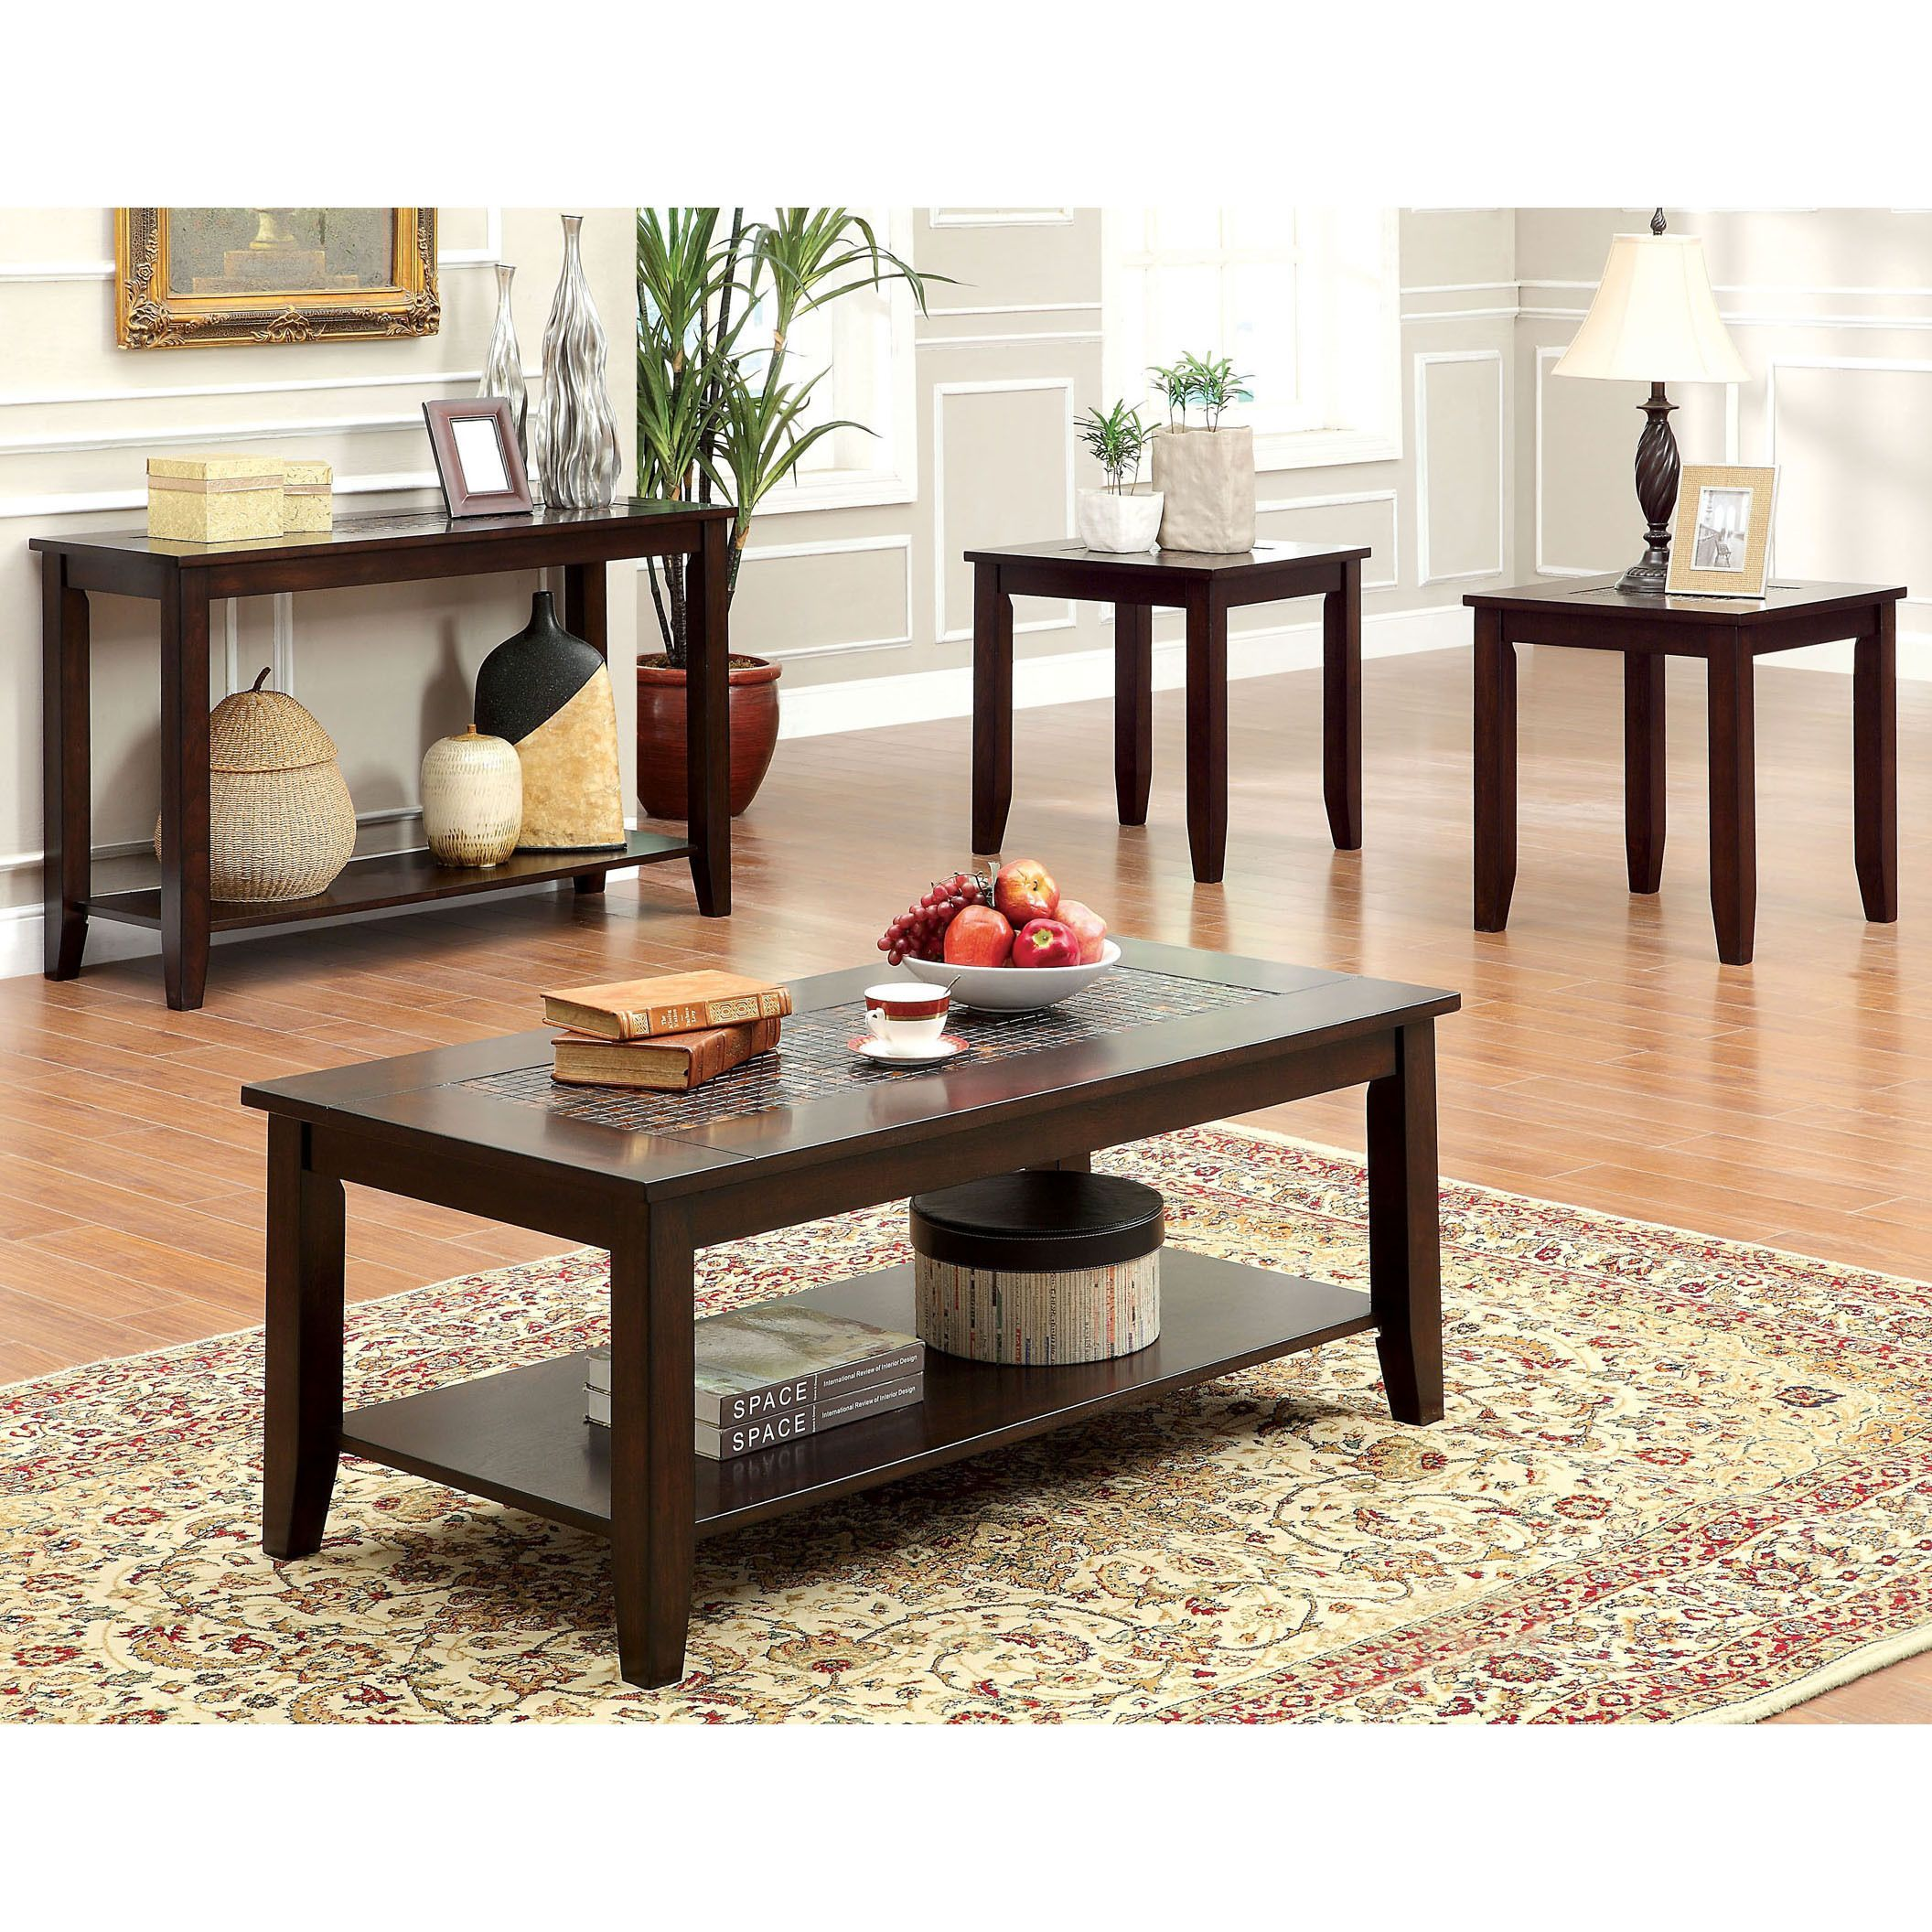 Cherry Wood Mosaic Tile Insert 4 Piece Coffee Table, Sofa Table And End  Tables